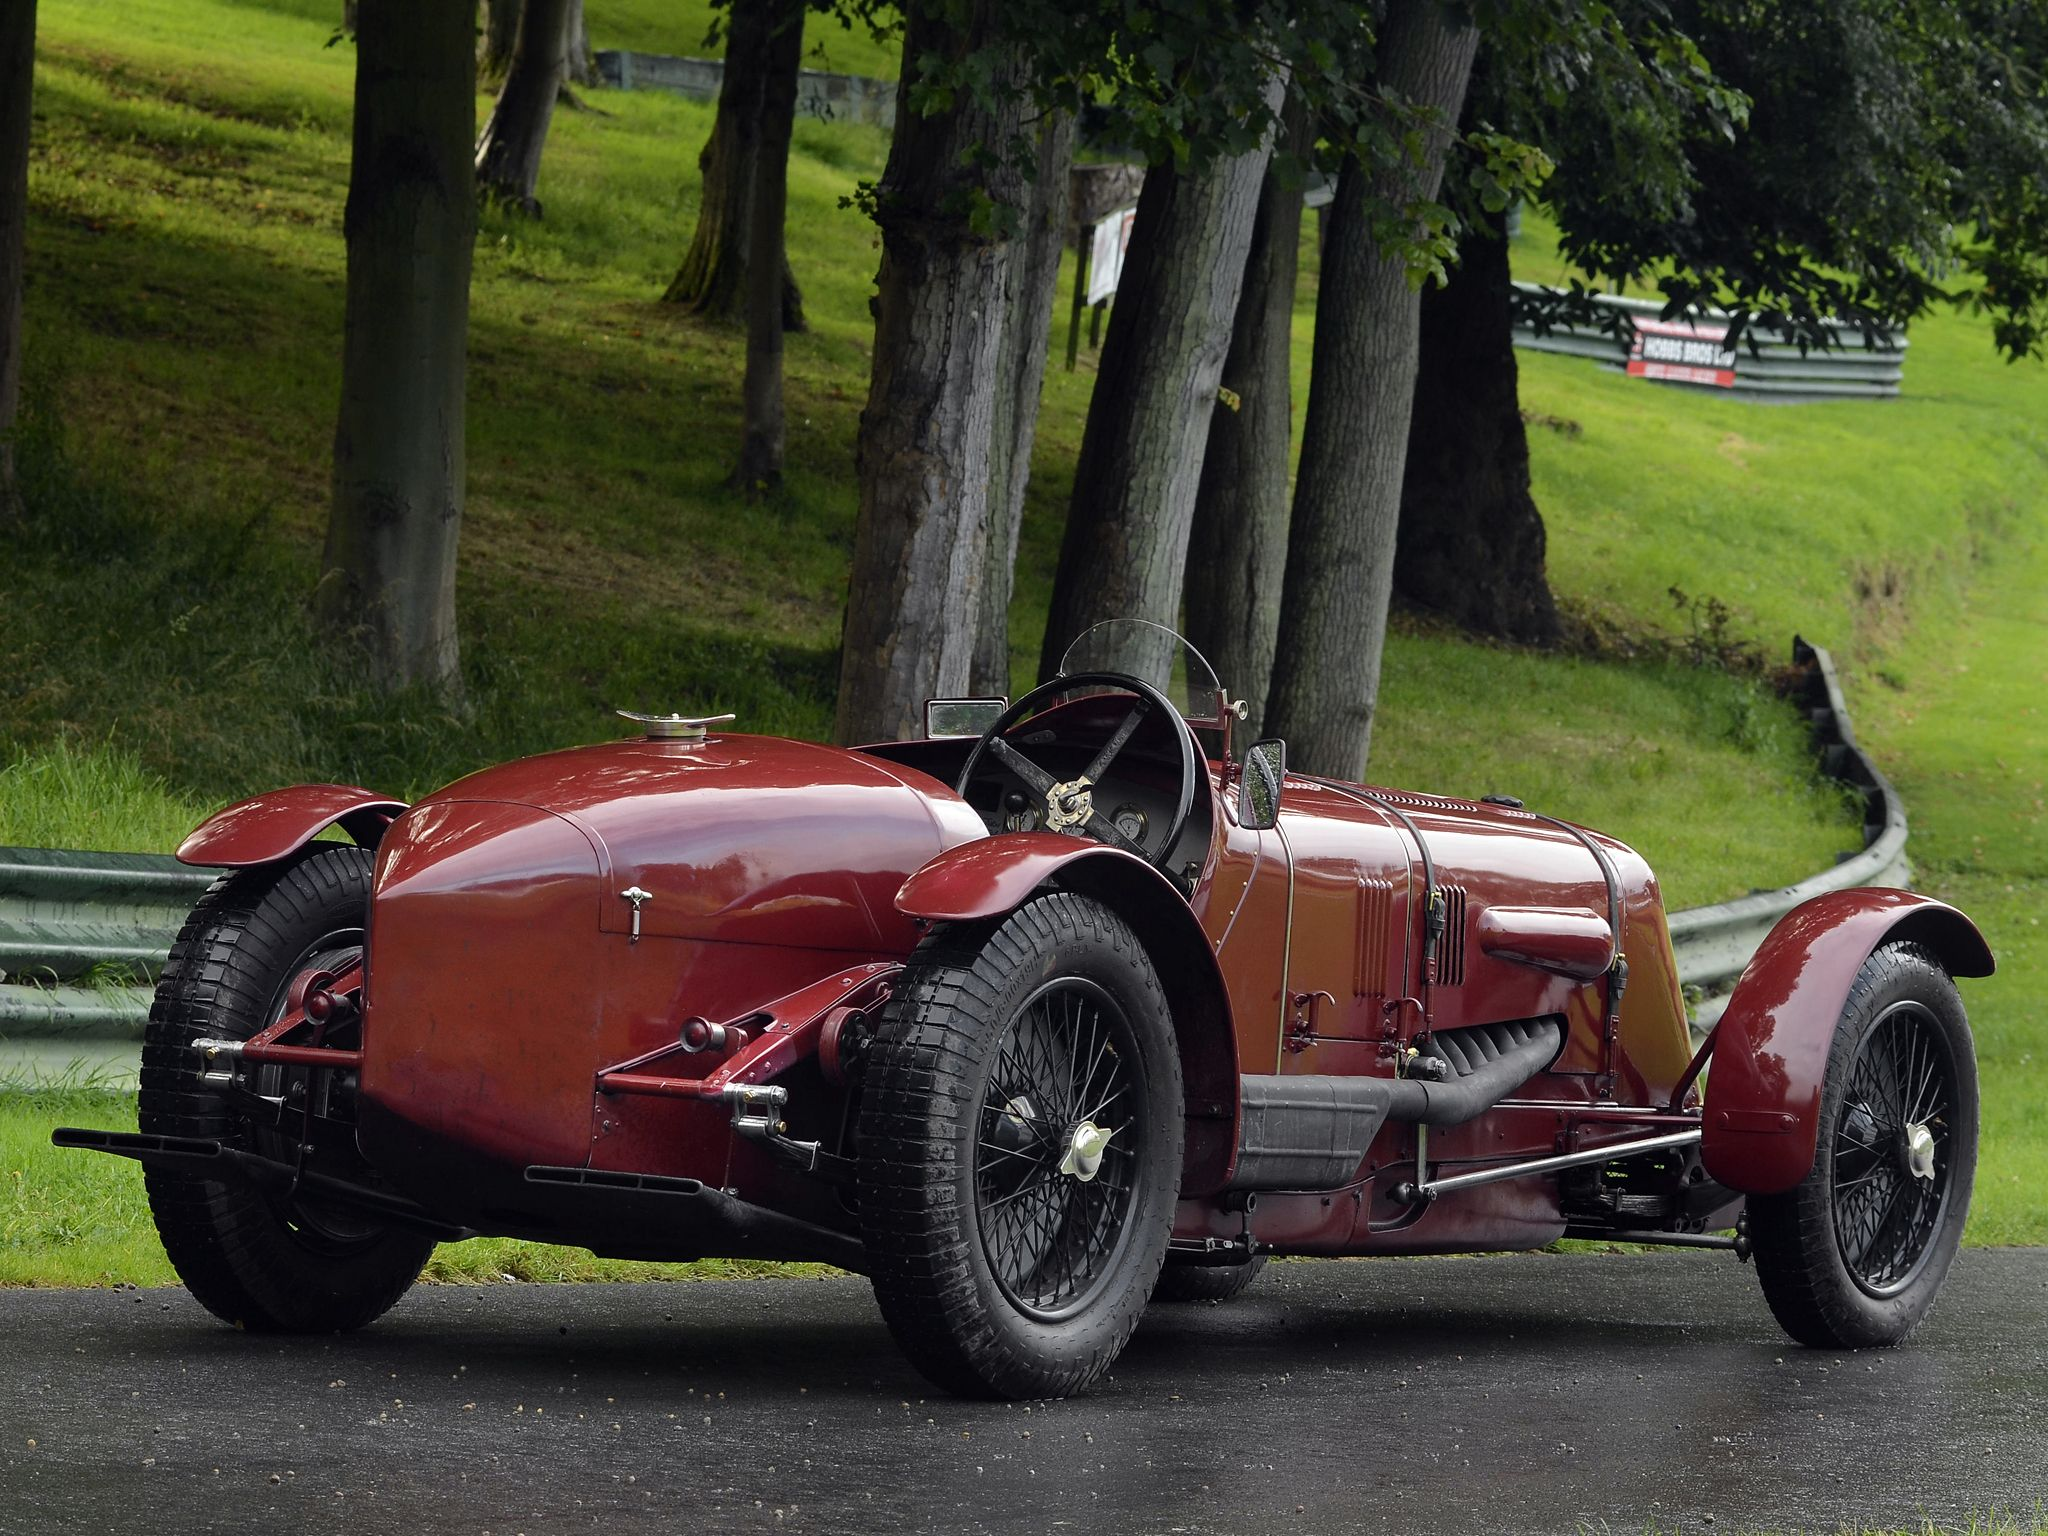 1929 Maserati Tipo V-4 Racing Car - right side view | Amazing Classic Cars | Antique cars ...